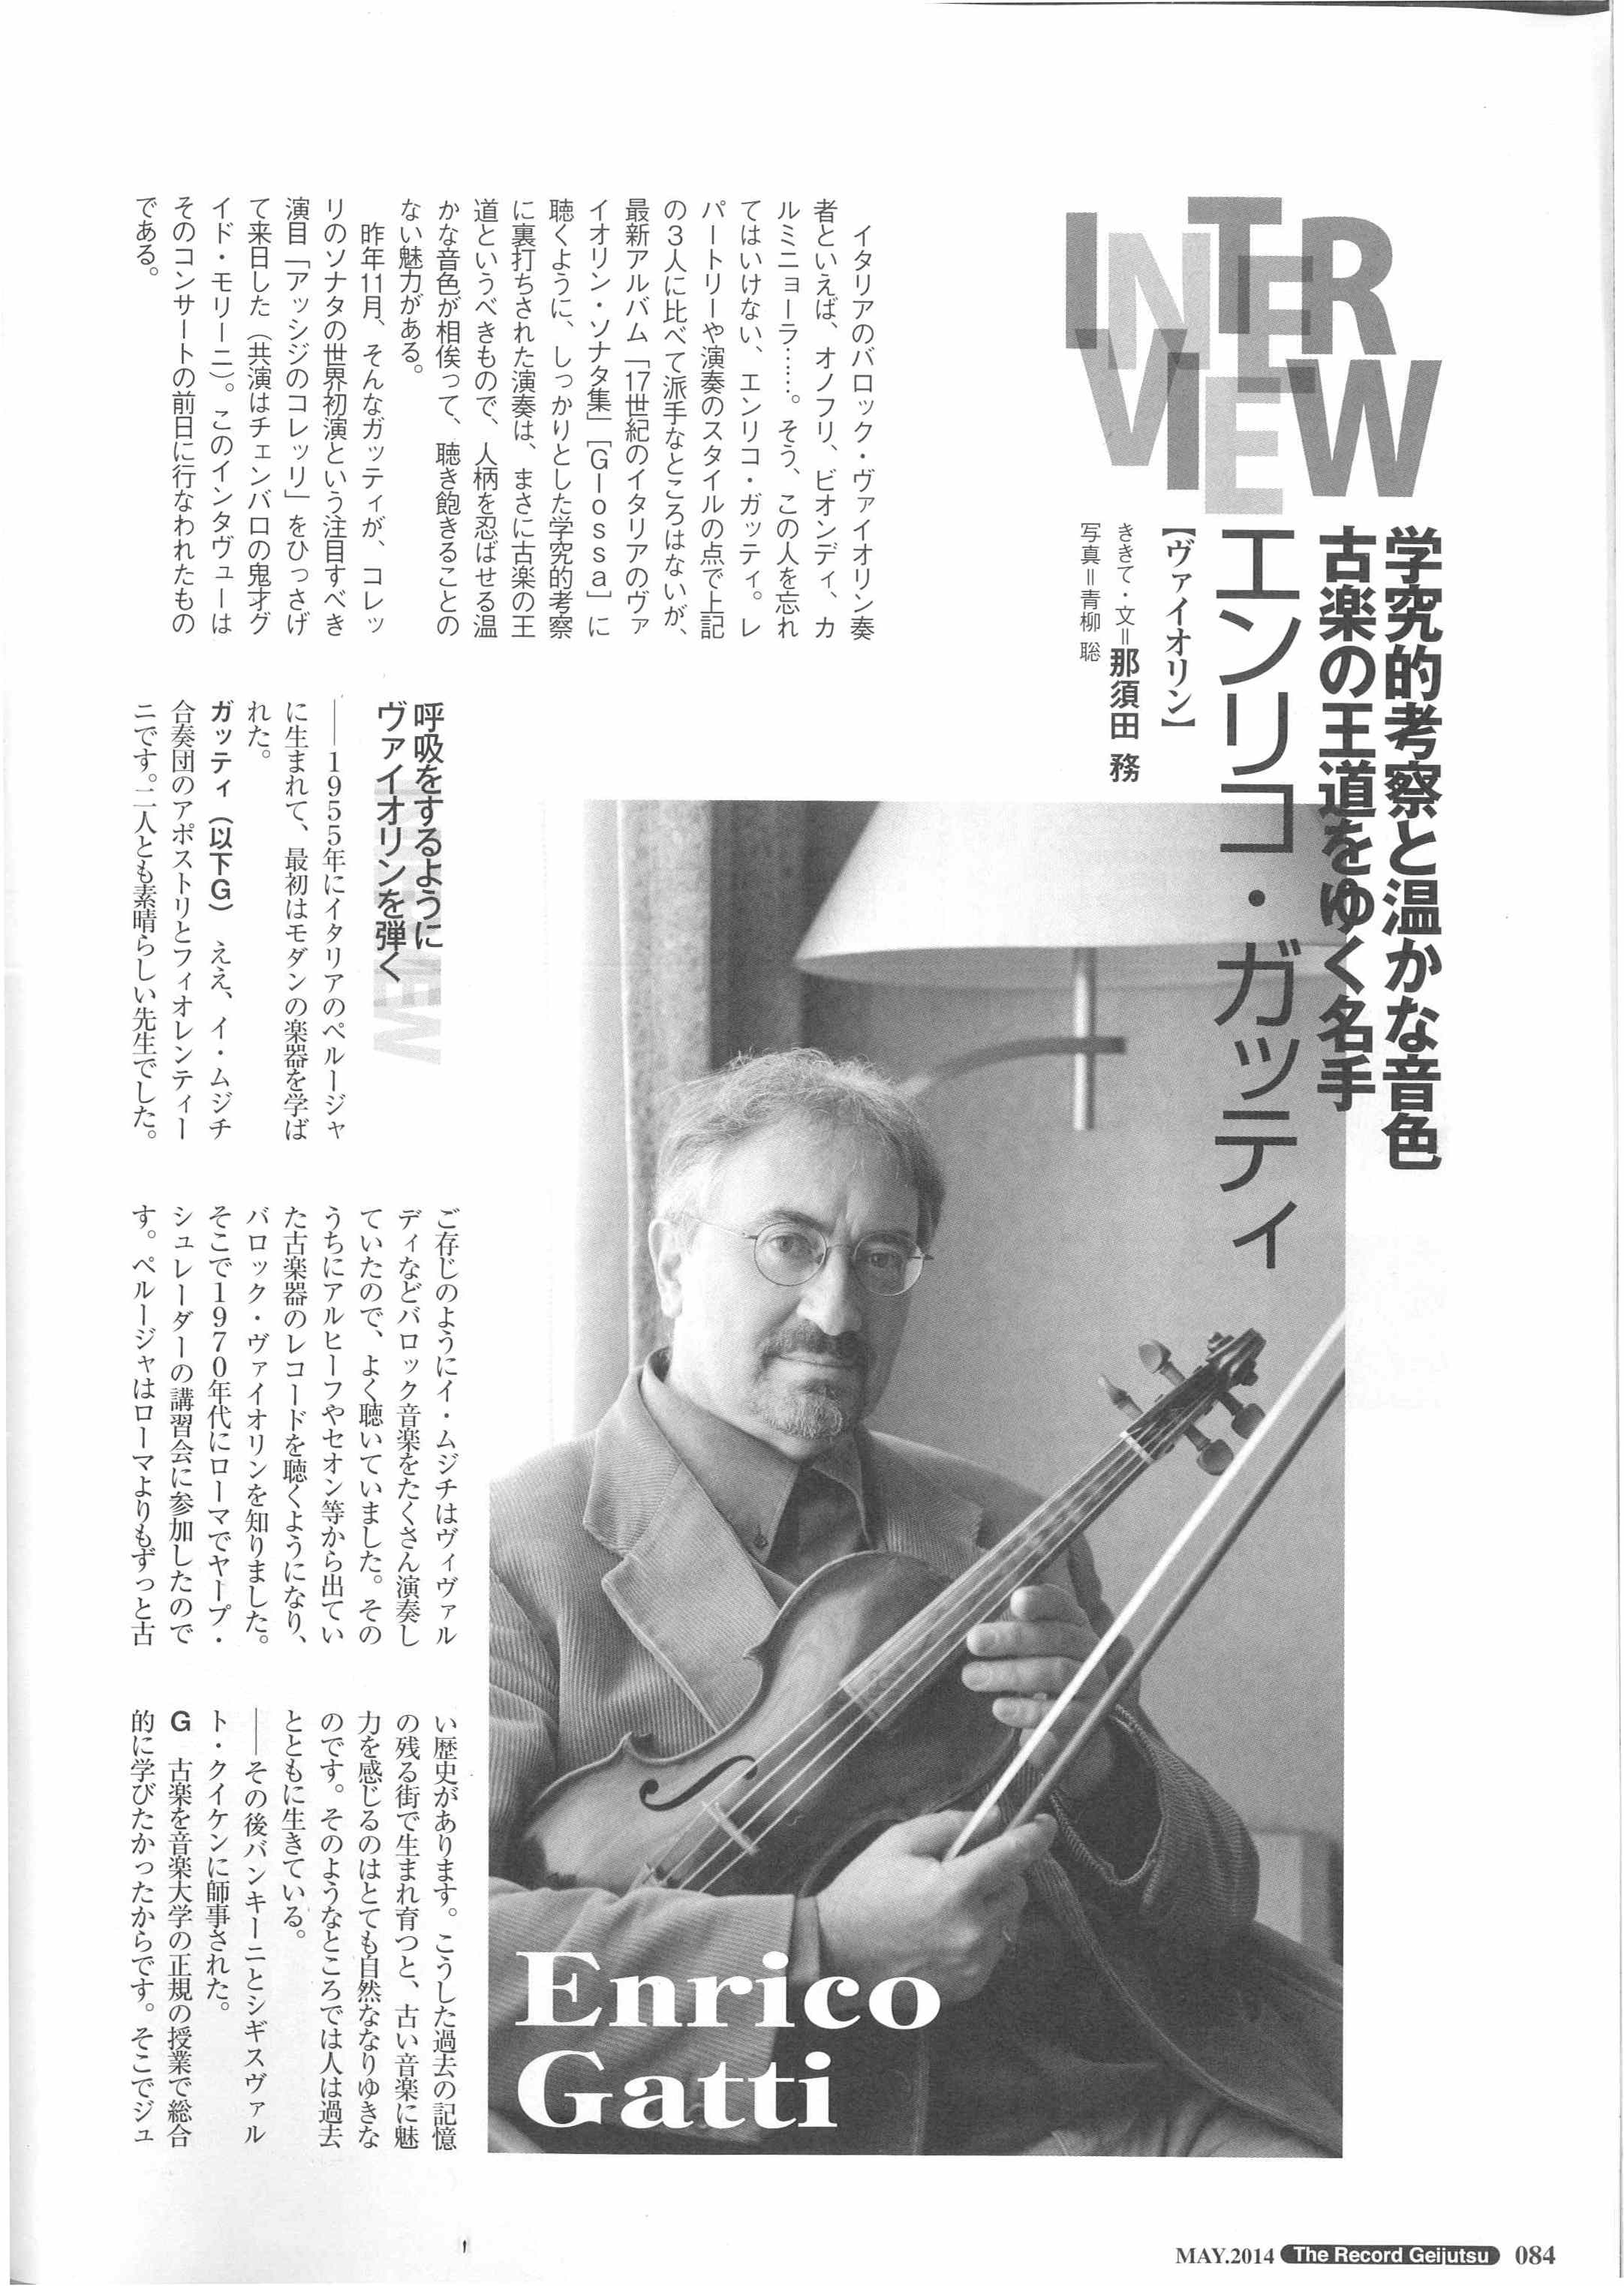 Enrico Gatti The Record Geijutsu May 2014 01